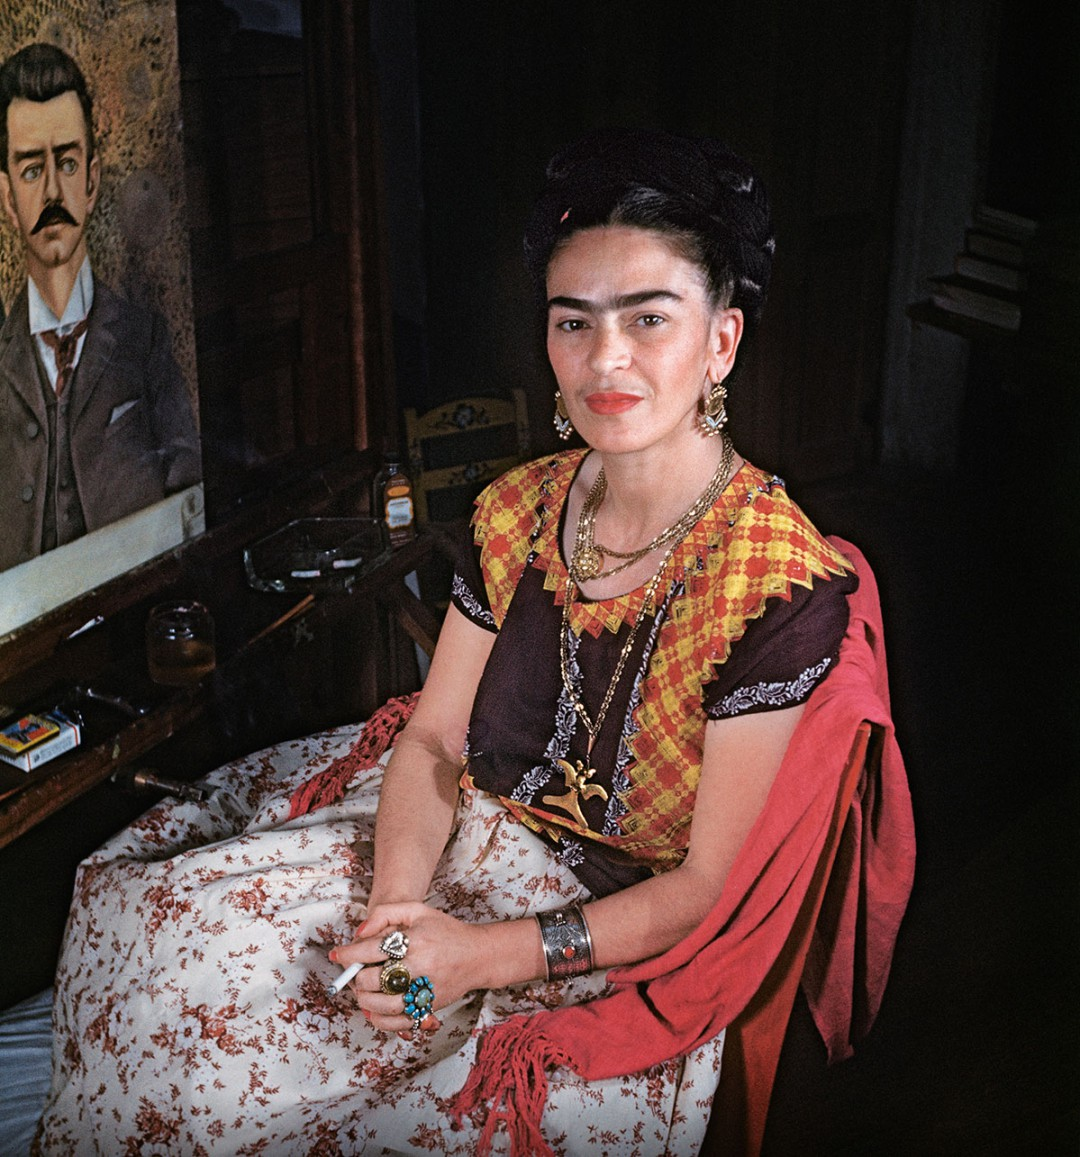 Frida Kahlo: The Gisèle Freund Phot